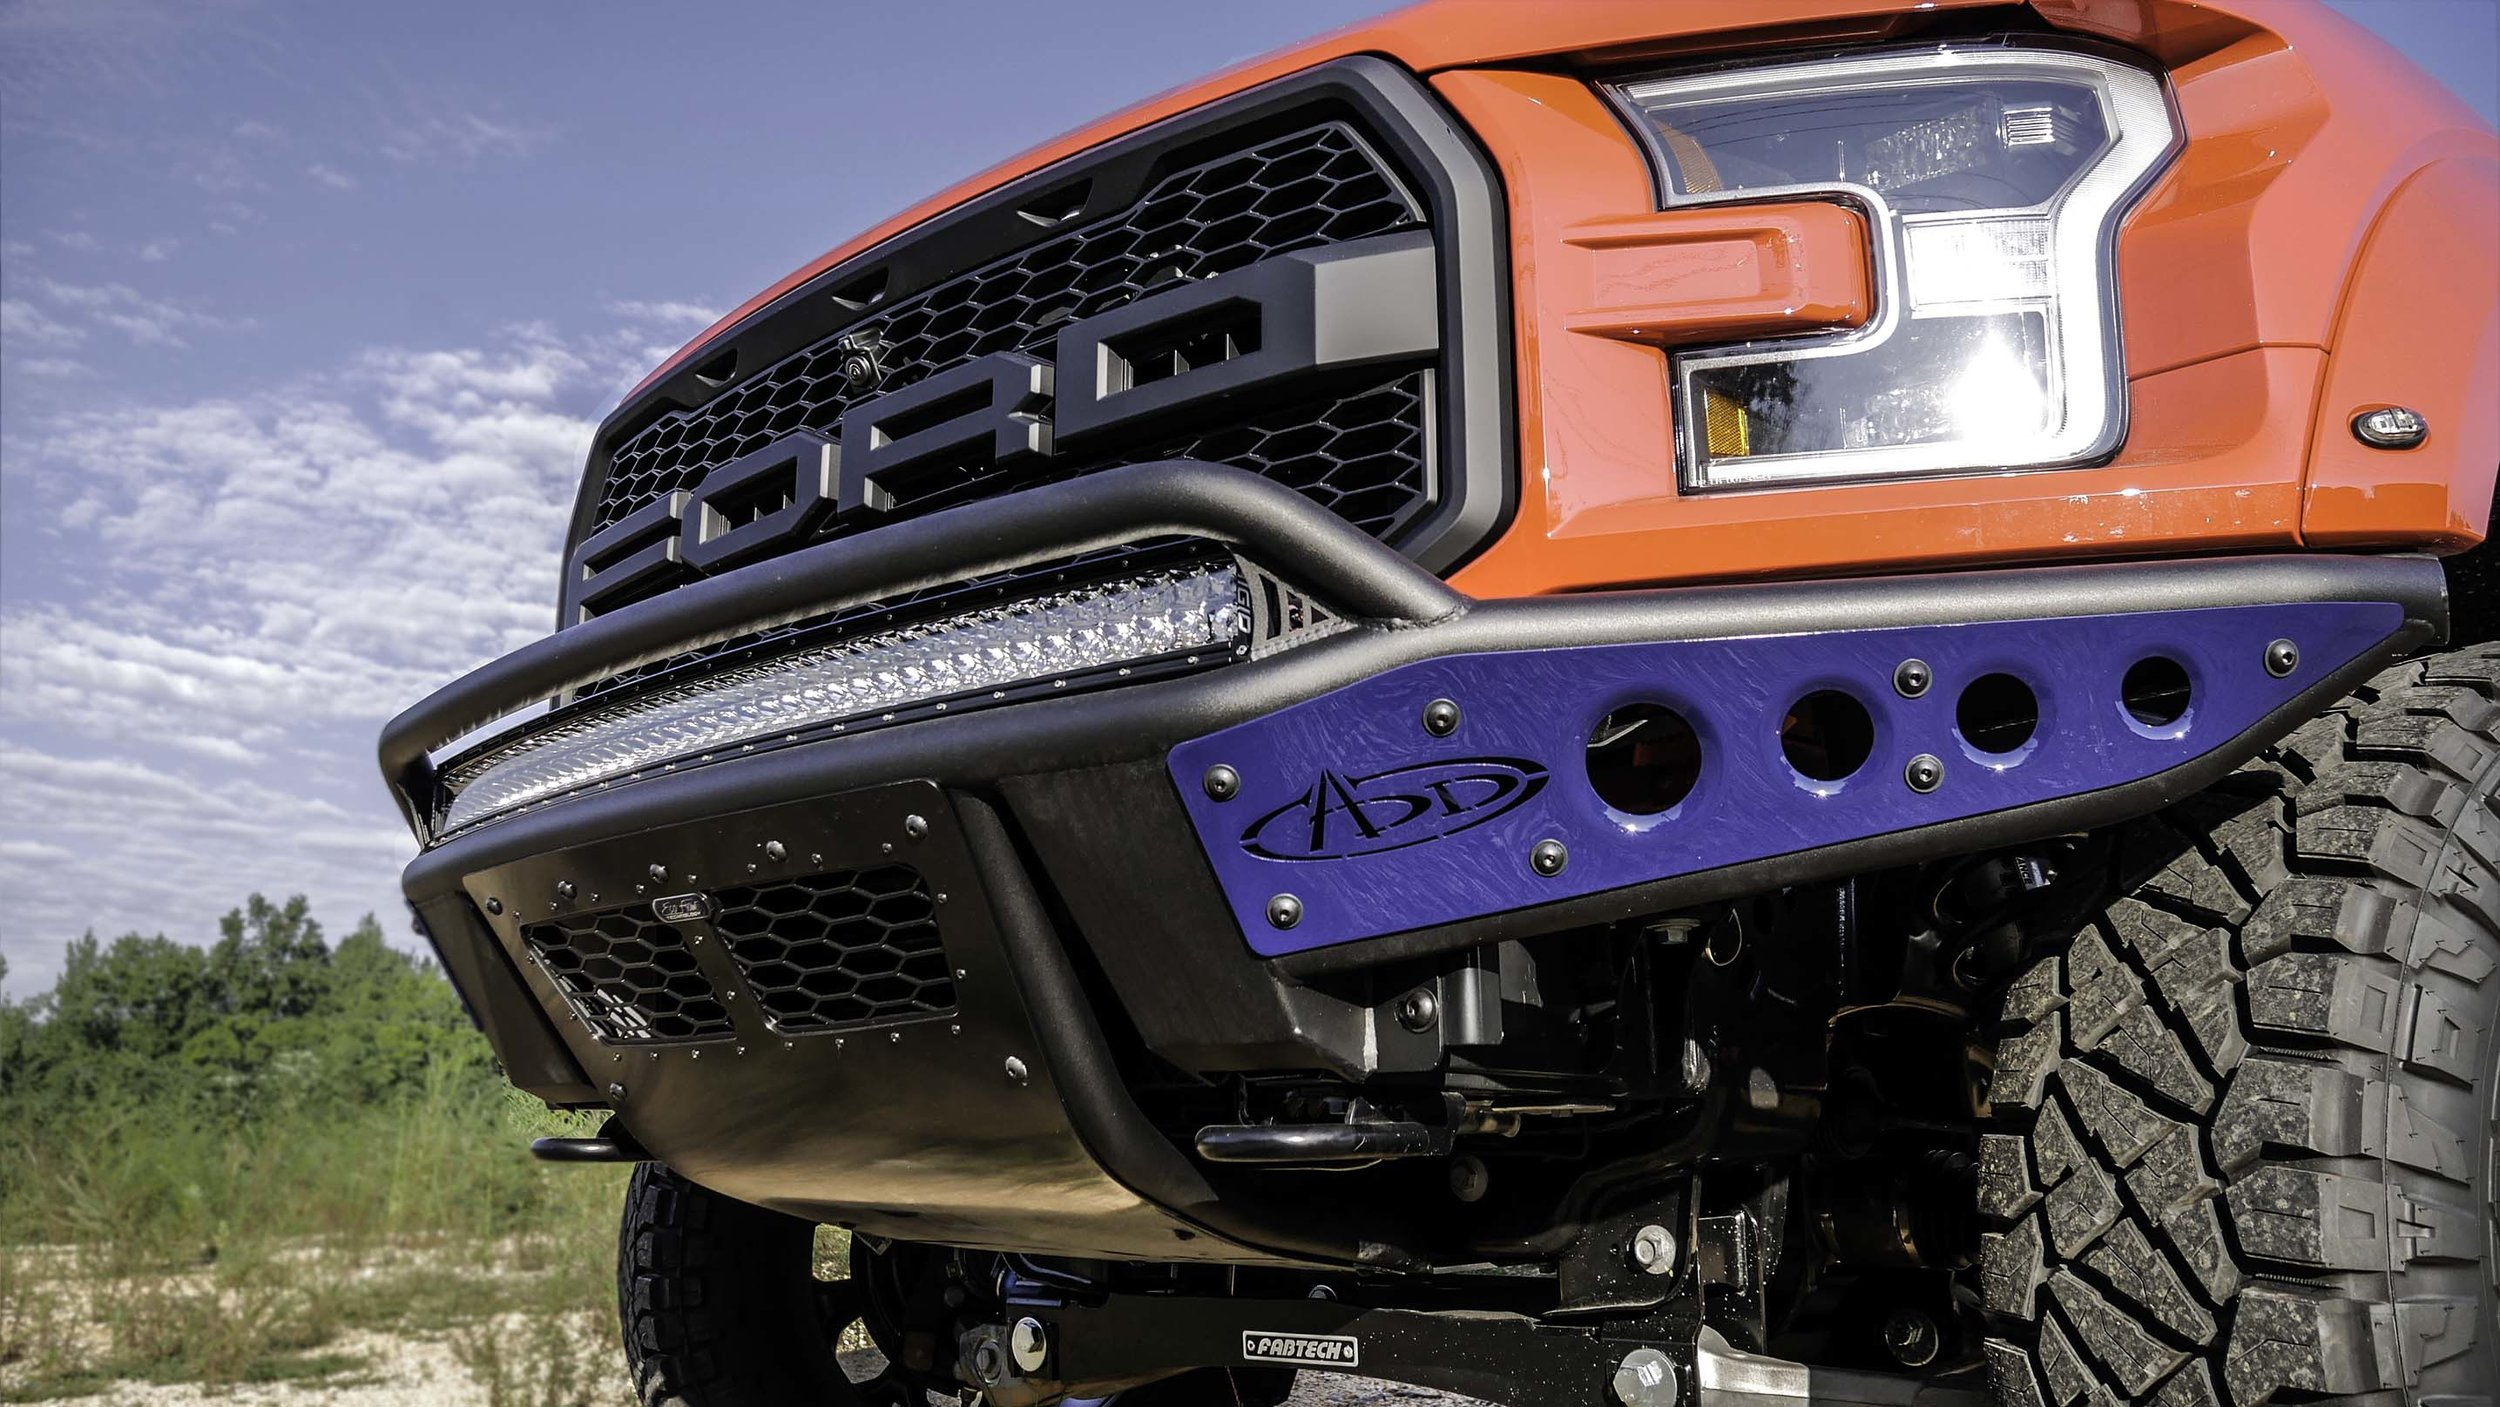 Ford Raptor Lifted Red with Blue Bumper.jpg